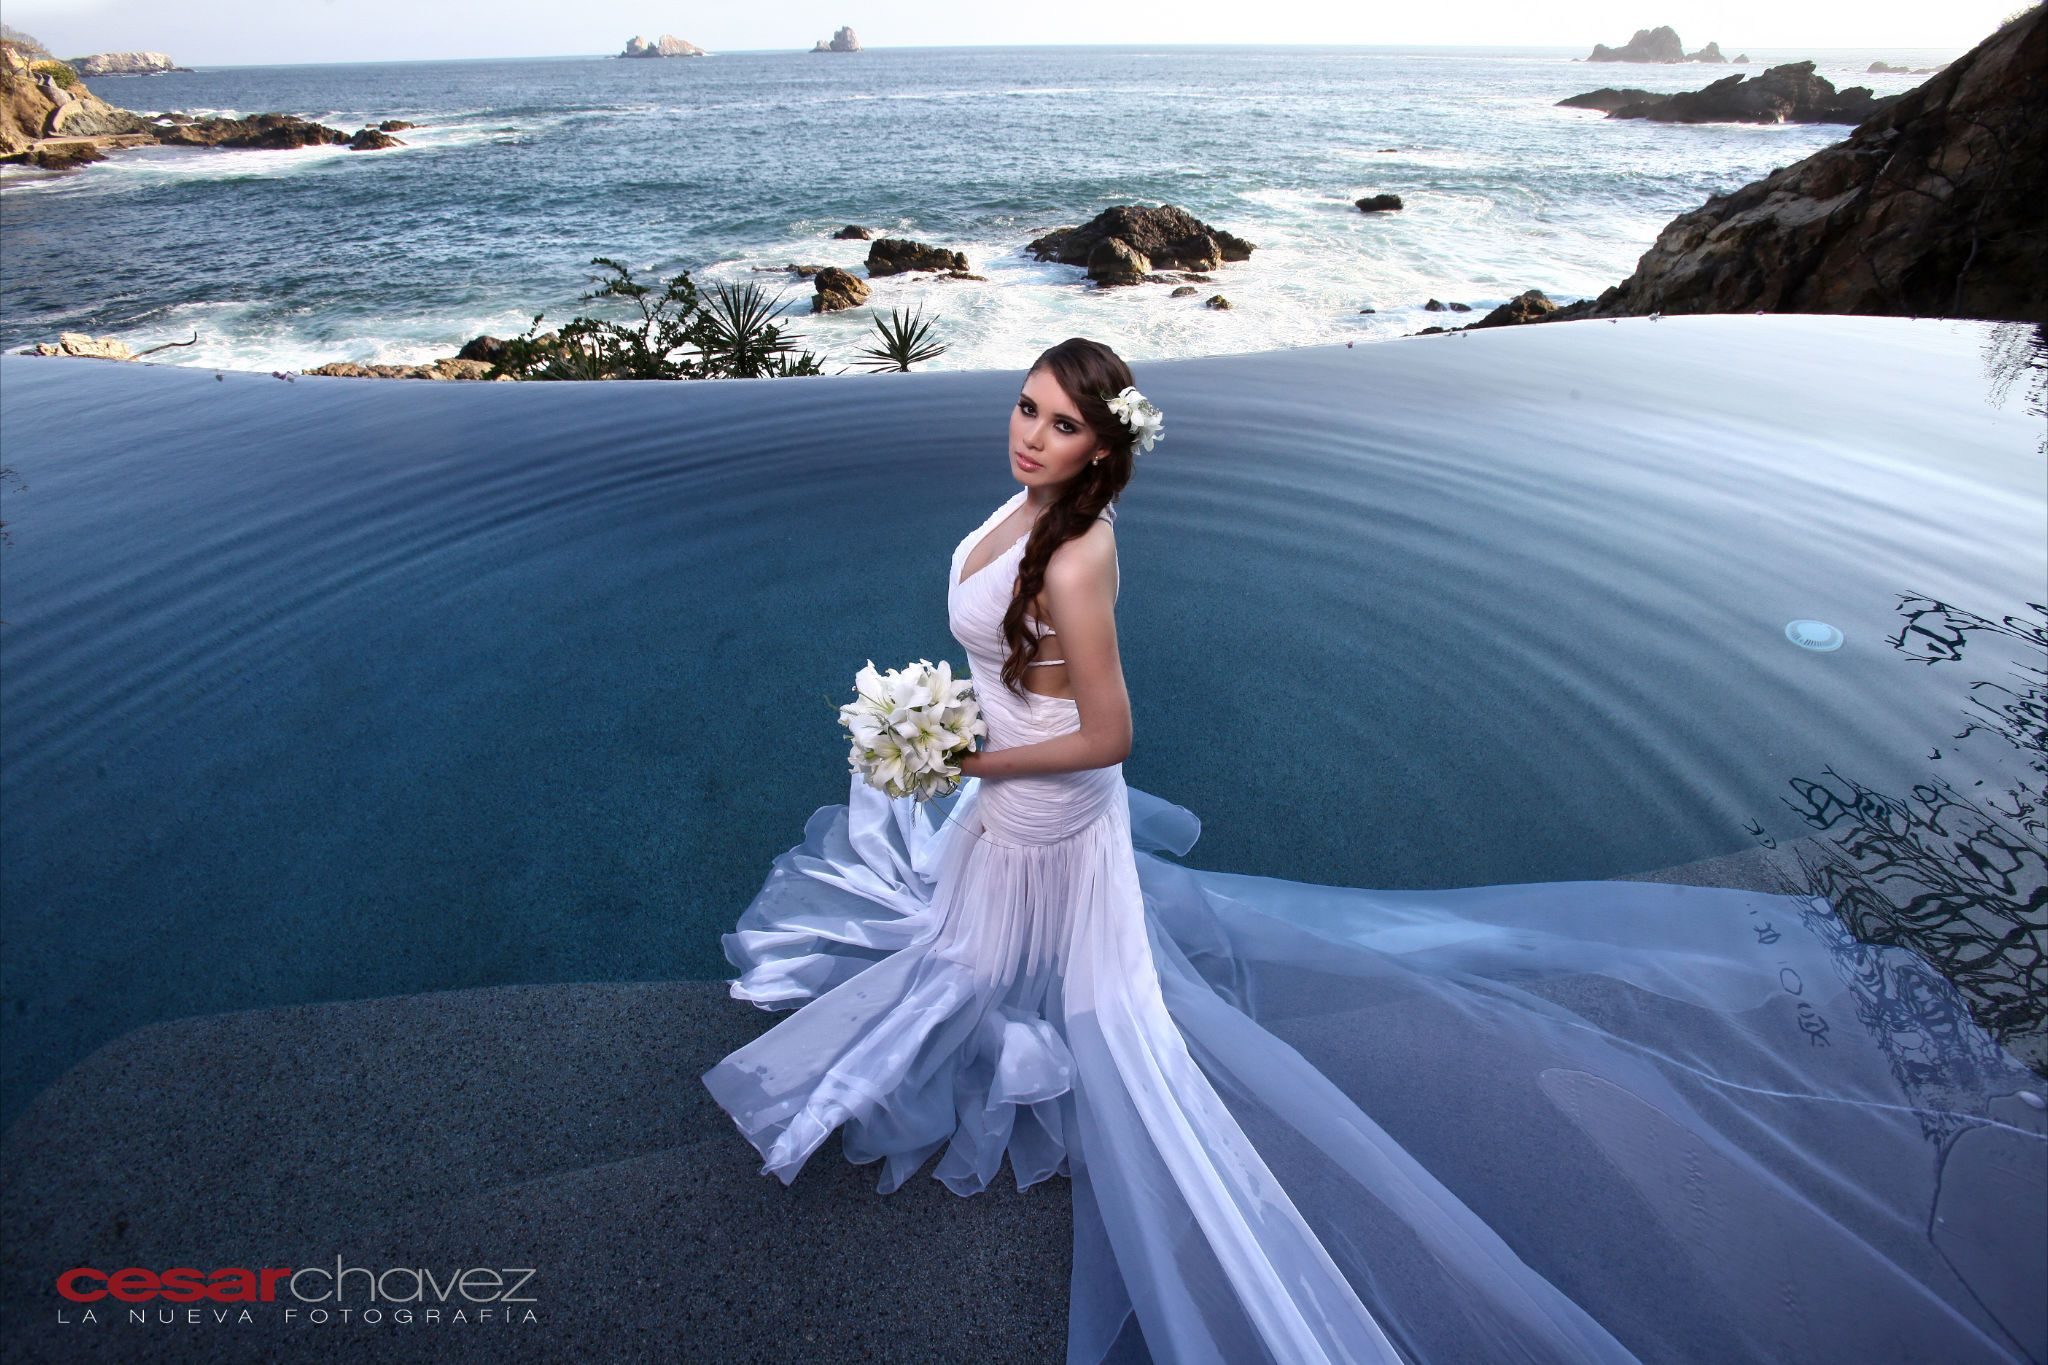 I love this stunning photo of a bride and her wedding dress in our ...